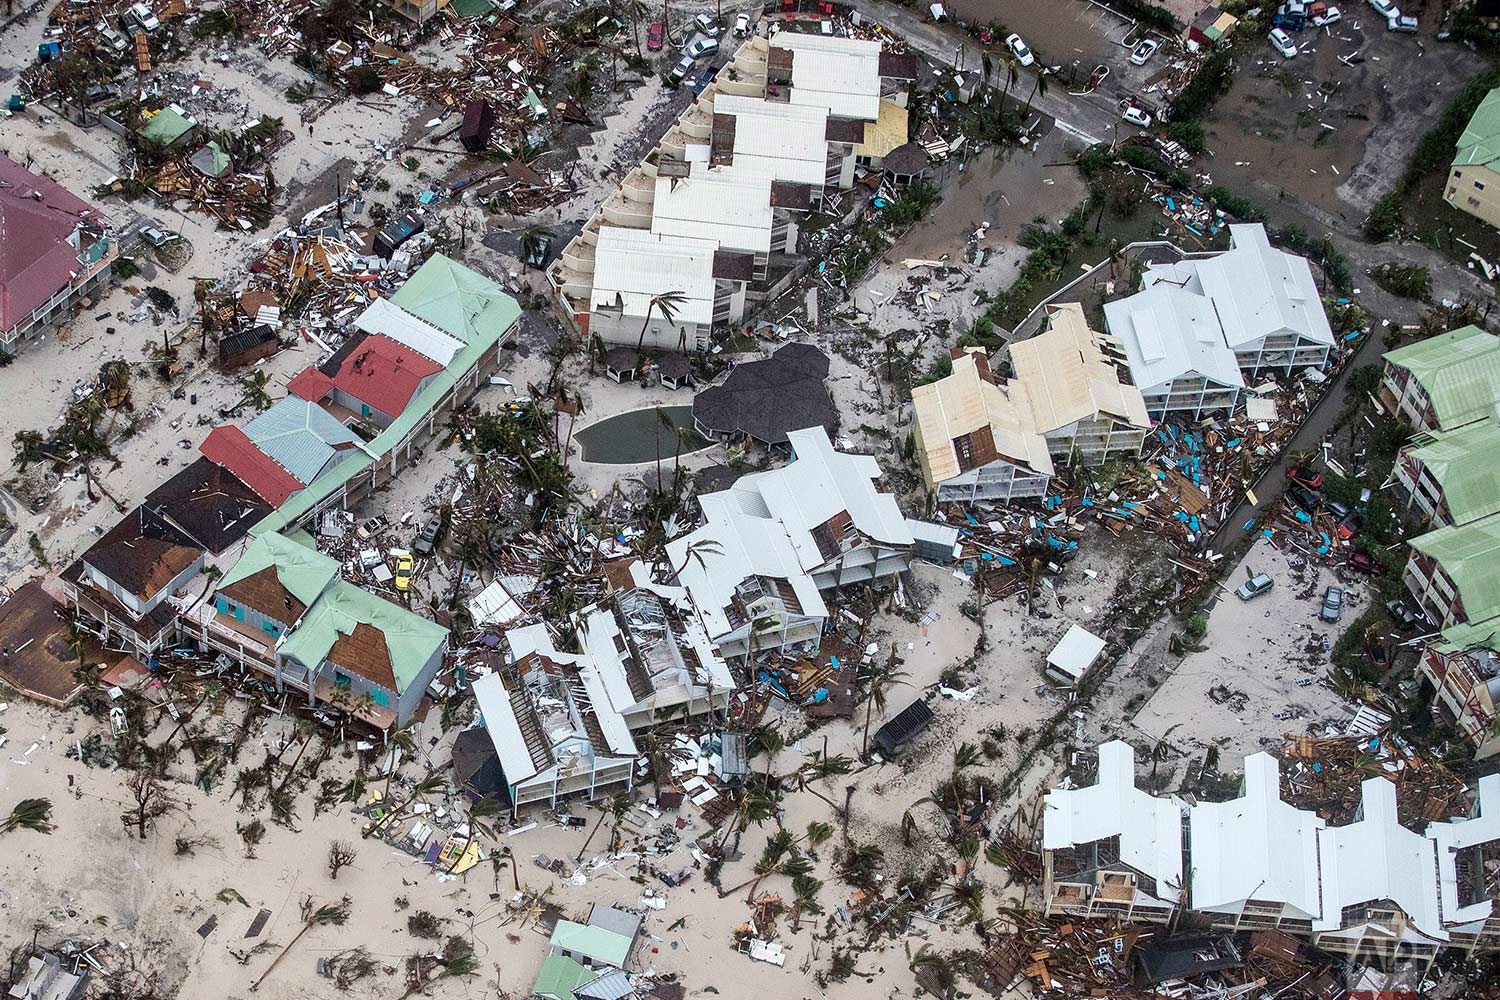 This photo provided by the Dutch Defense Ministry shows storm damage in the aftermath of Hurricane Irma, in Dutch Caribbean Sint Maarten, on Sept. 6, 2017. Irma cut a path of devastation across the northern Caribbean, leaving thousands homeless after destroying buildings and uprooting trees. Significant damage was reported on the island that is split between French and Dutch control. (Gerben Van Es/Dutch Defense Ministry via AP)